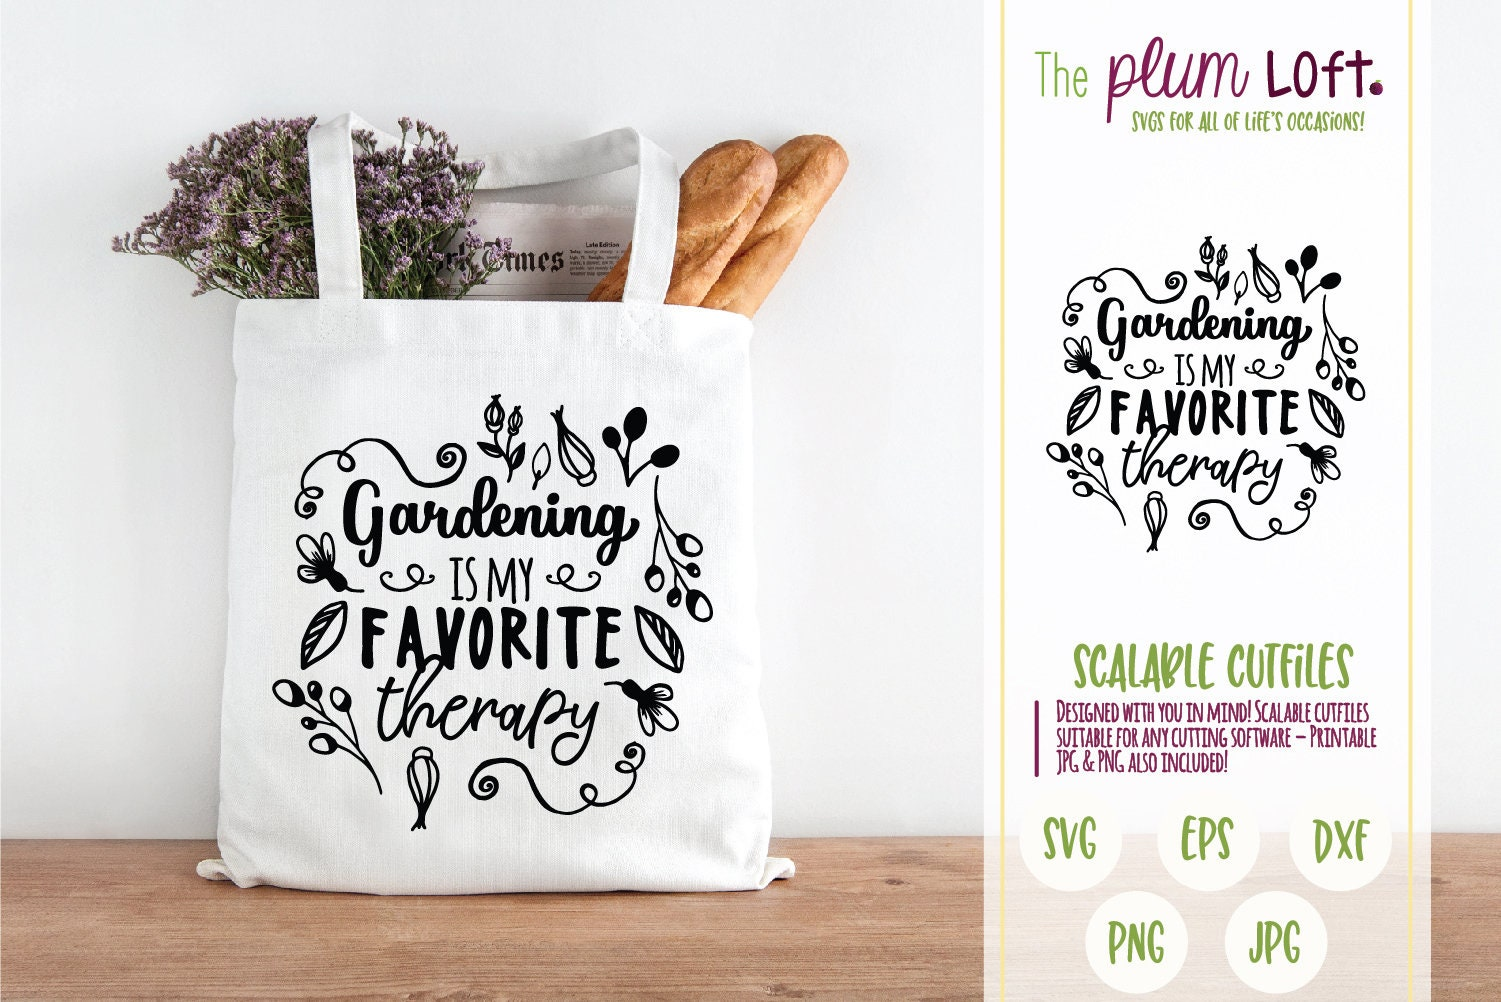 Gardening is my favorite therapy - Garden Flower Plant Design - SVG Cutting  File for Cutting Machines - SVG, Eps, Png, & Jpg